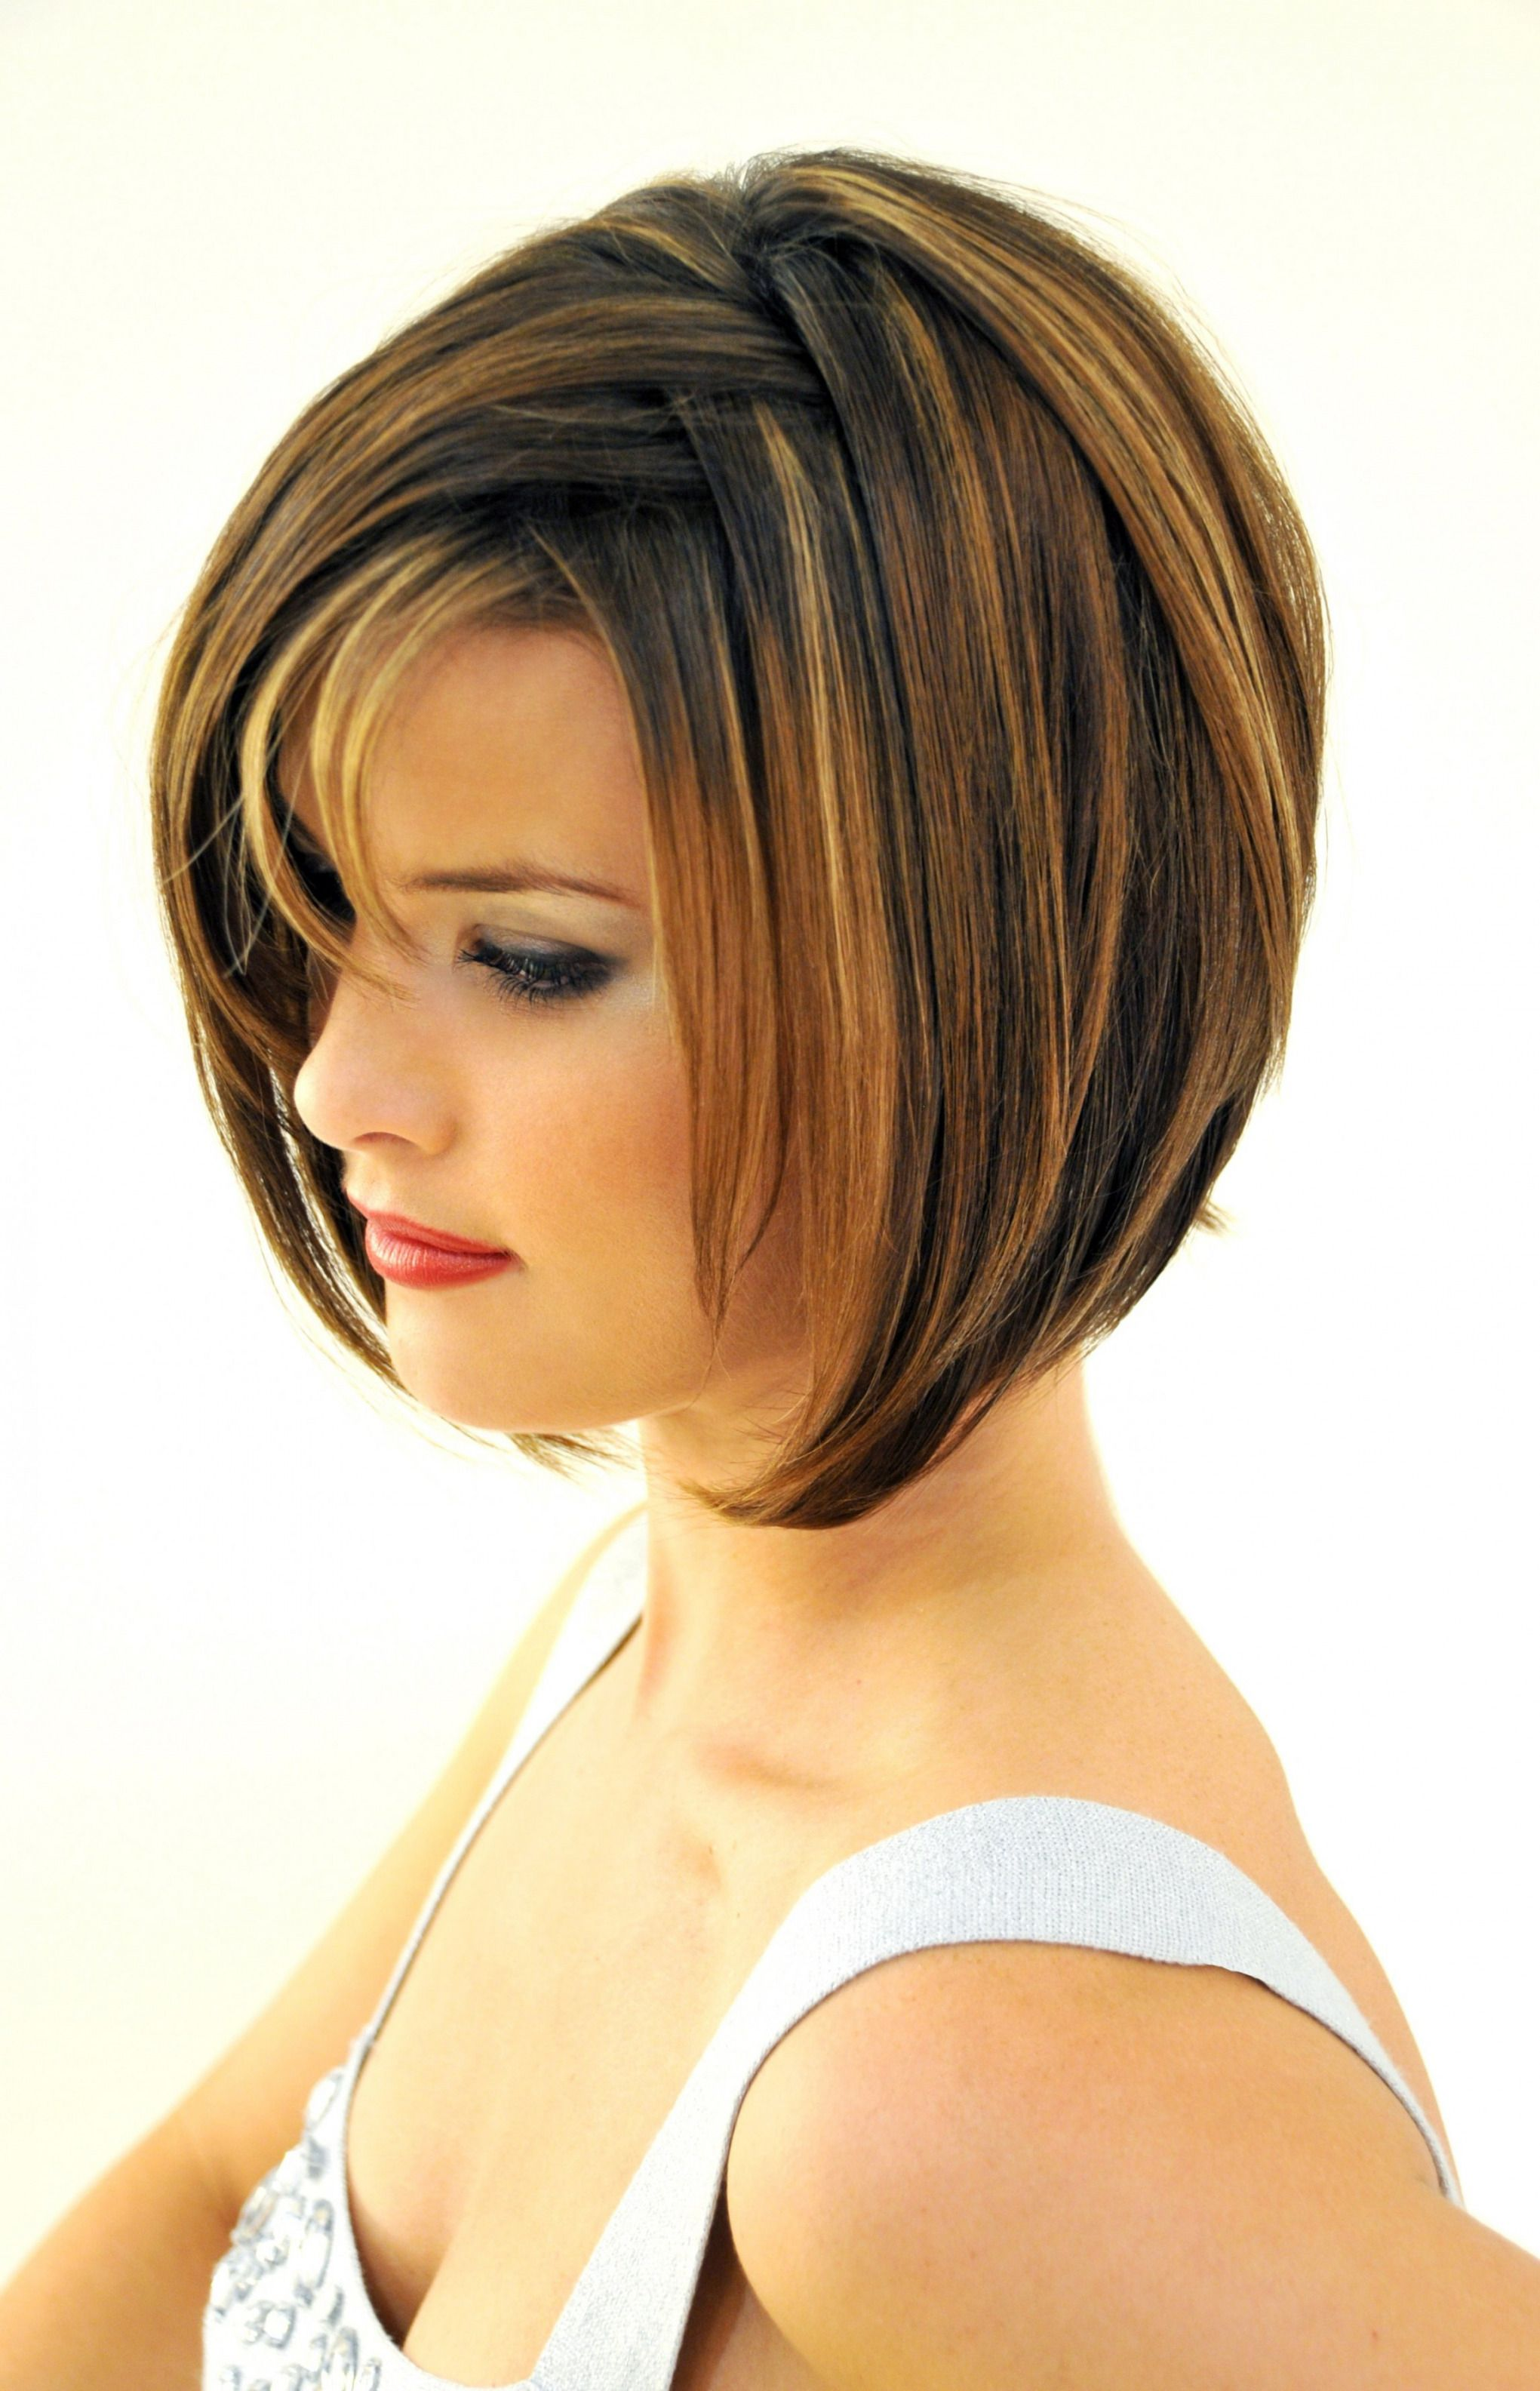 Image Result For Short Haircuts For Women Over 50 Back View Bob Hairstyles With Bangs Layered Bob Hairstyles Layered Bob Haircuts